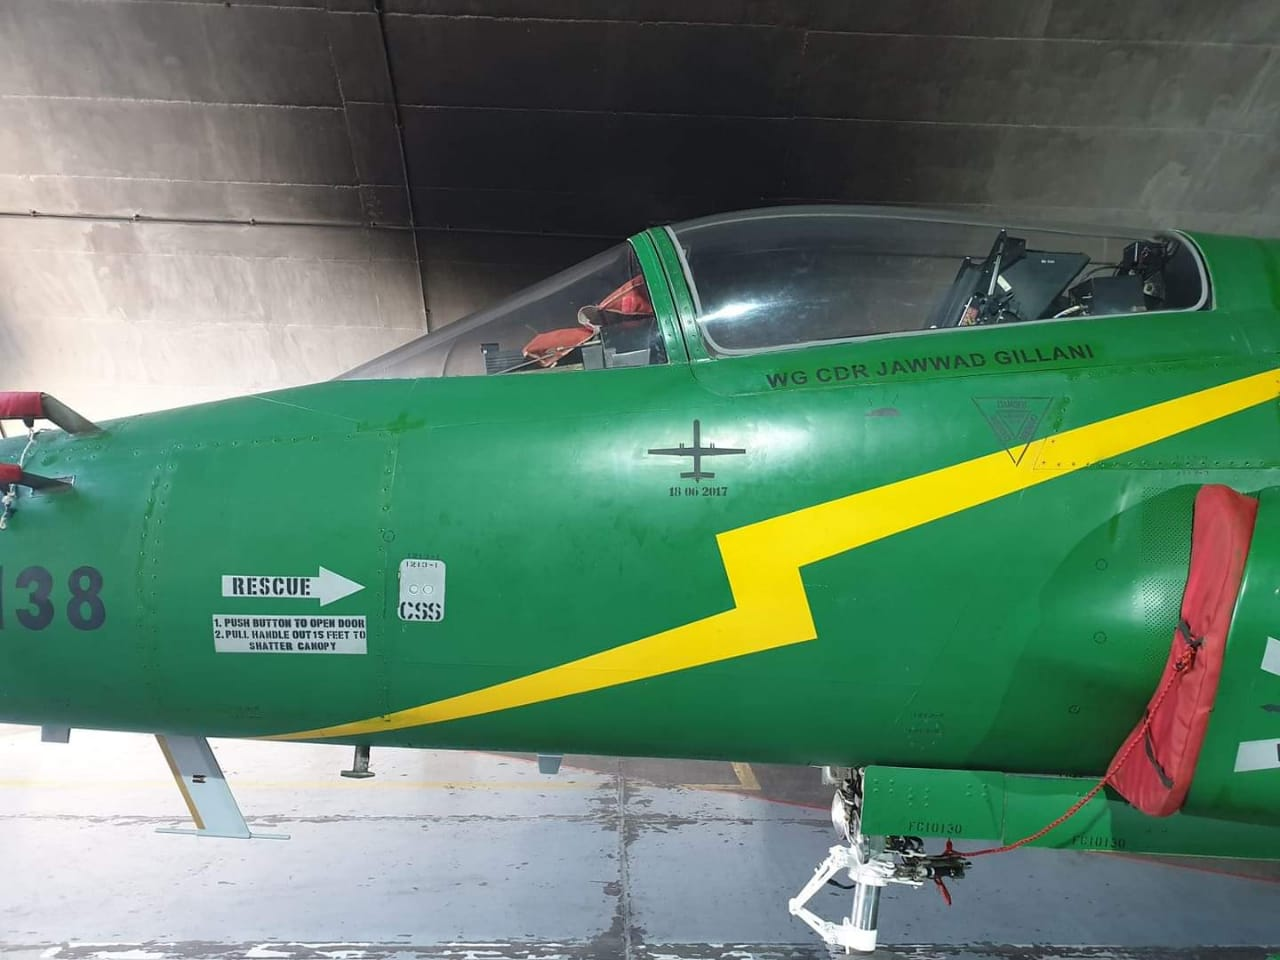 IRGC Shahed 129 UCAV Kill Mark Spotted On PAF JF-17 Thunder Fighter Jets